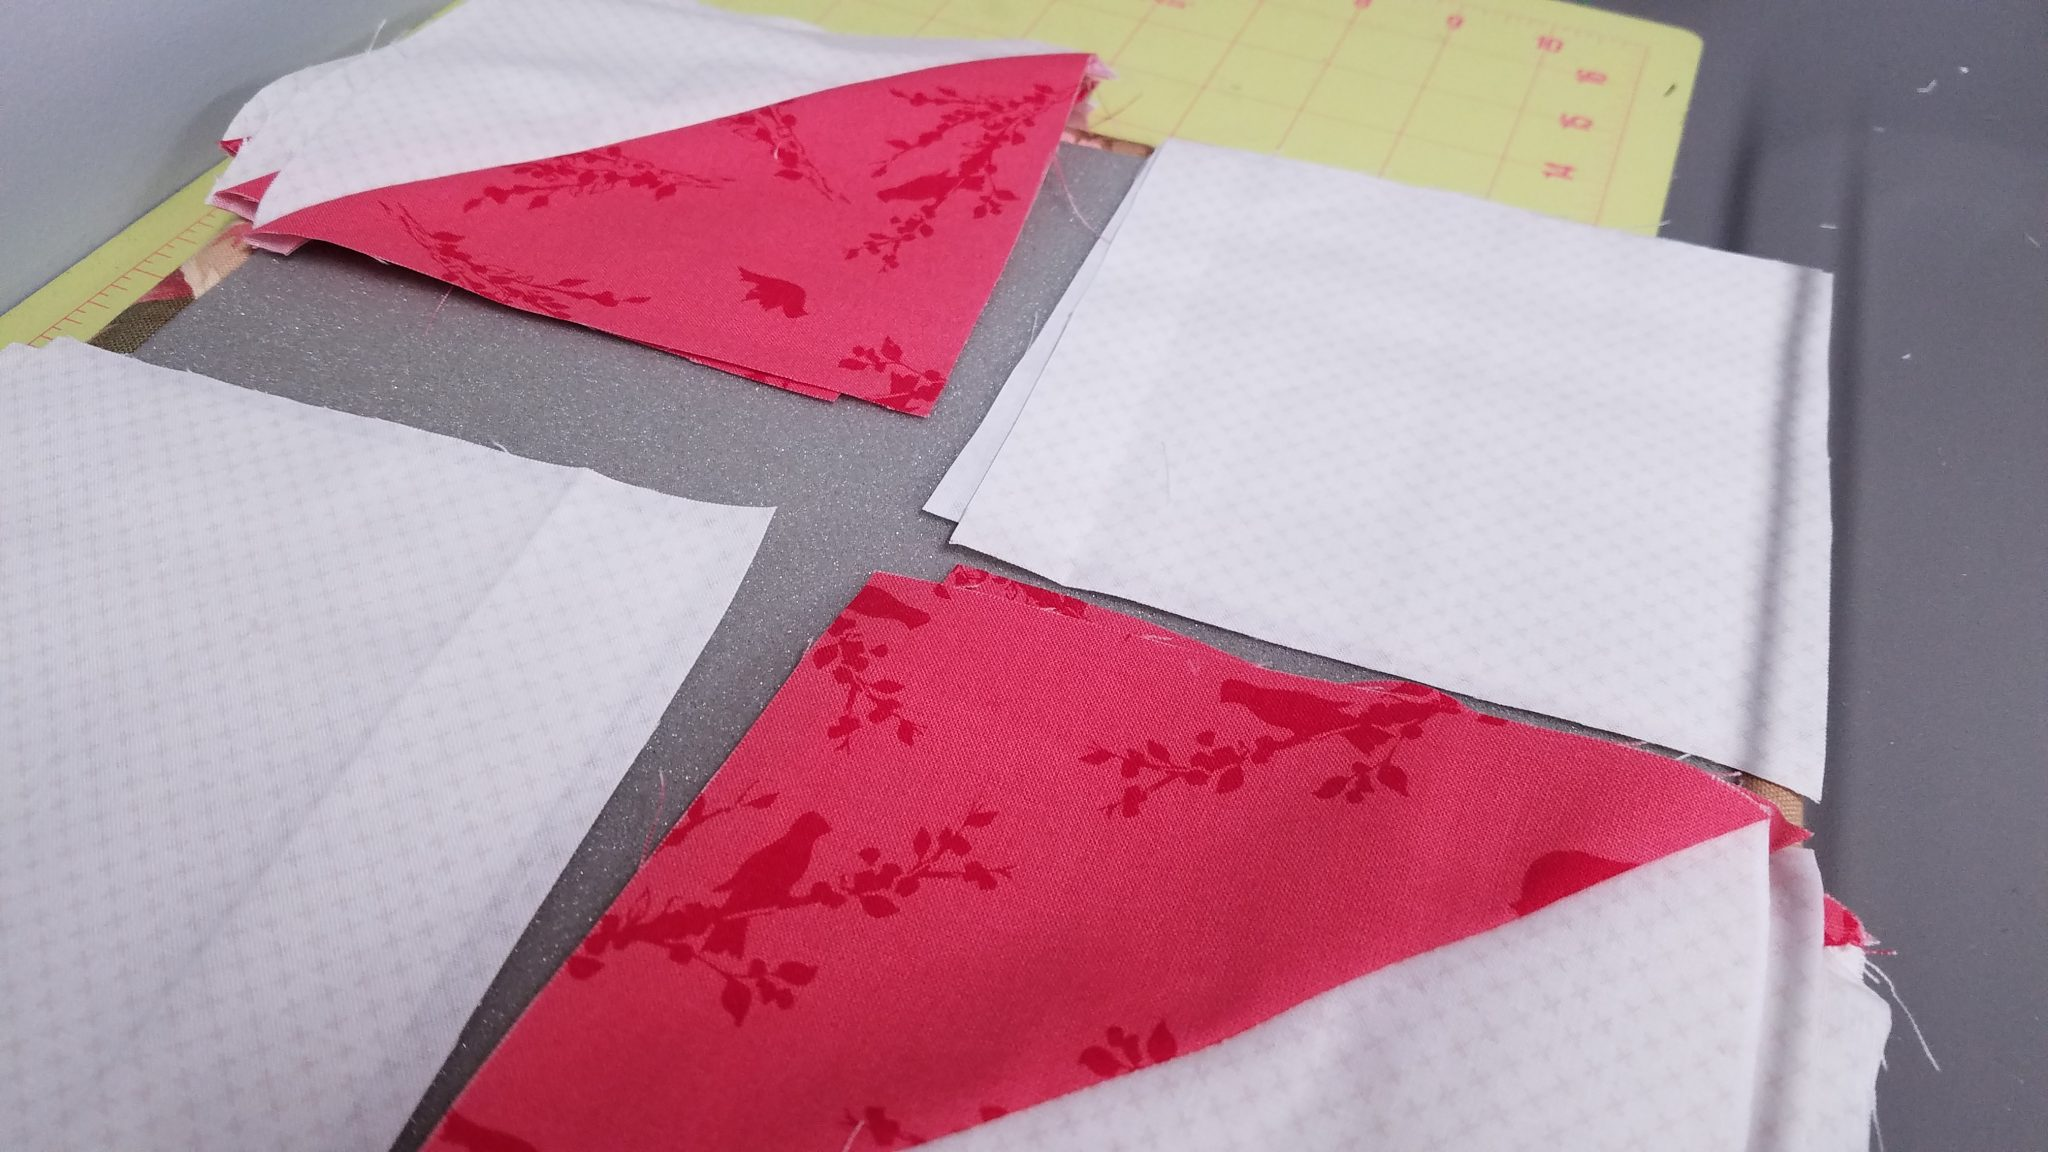 I've been sewing a bunch the last little bit trying to get 3 quilts sewn together for a fun we